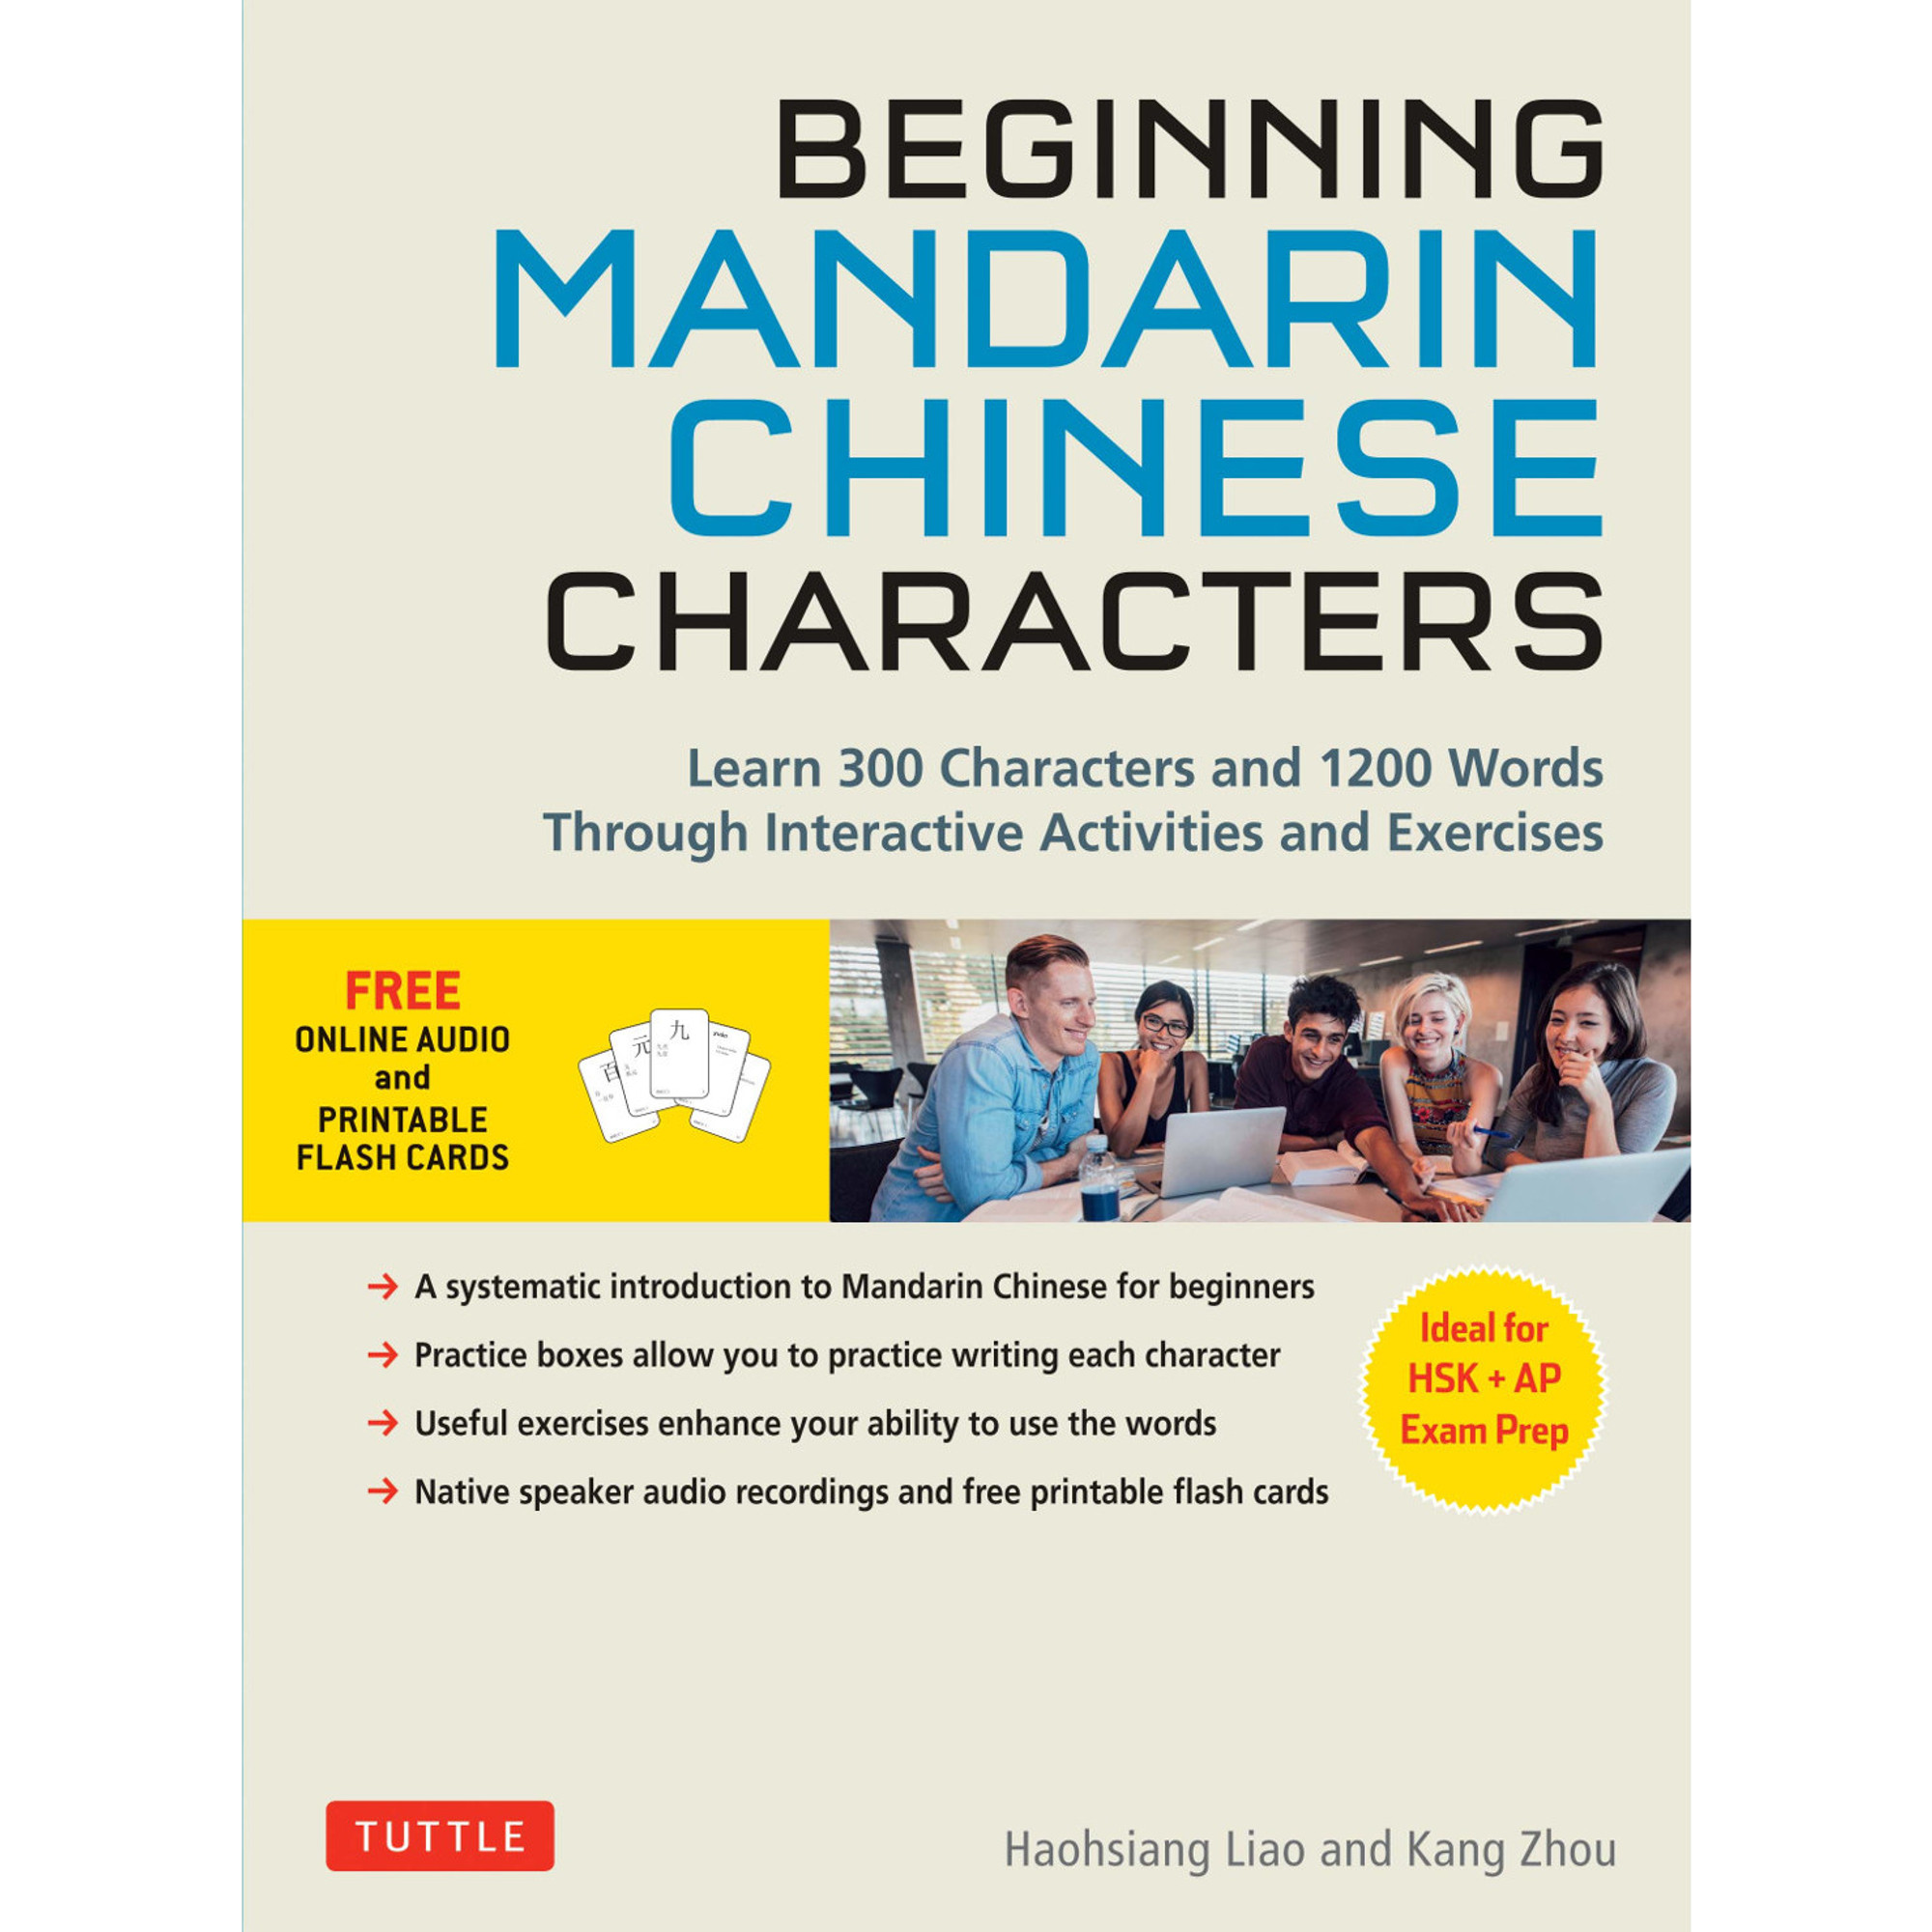 learn chinese online free with audio